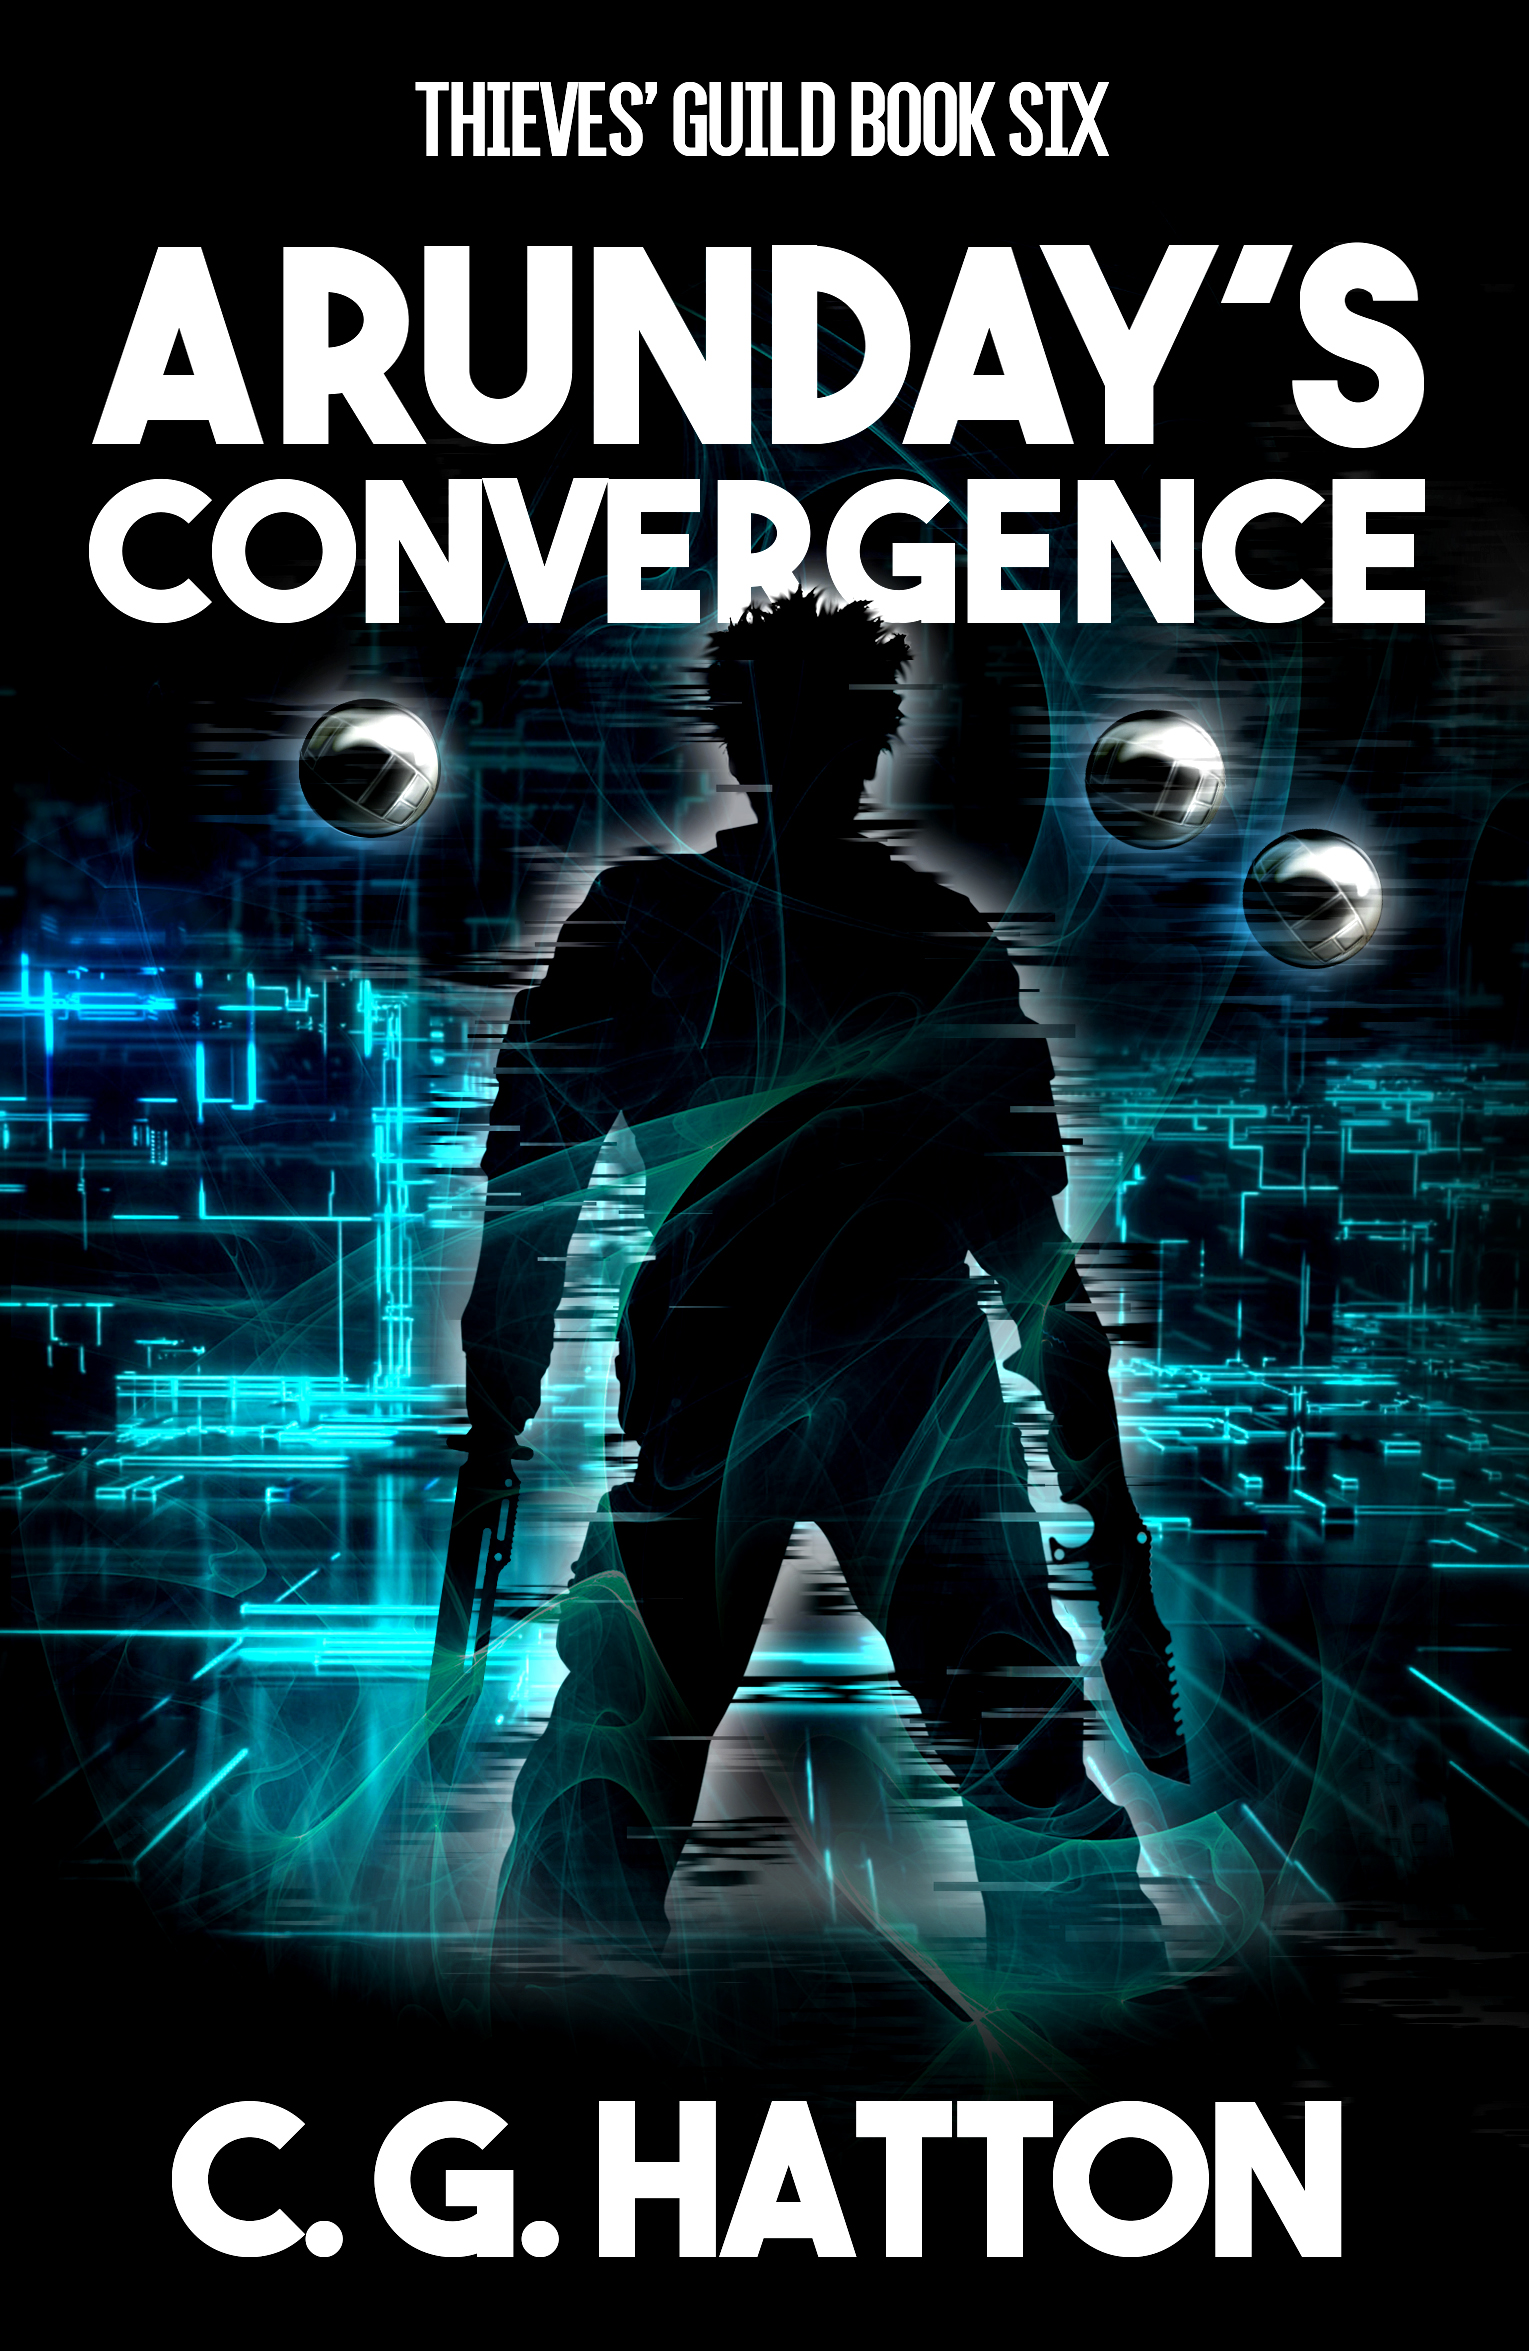 Arunday's Convergence - fast-paced epic sci-fi adventure